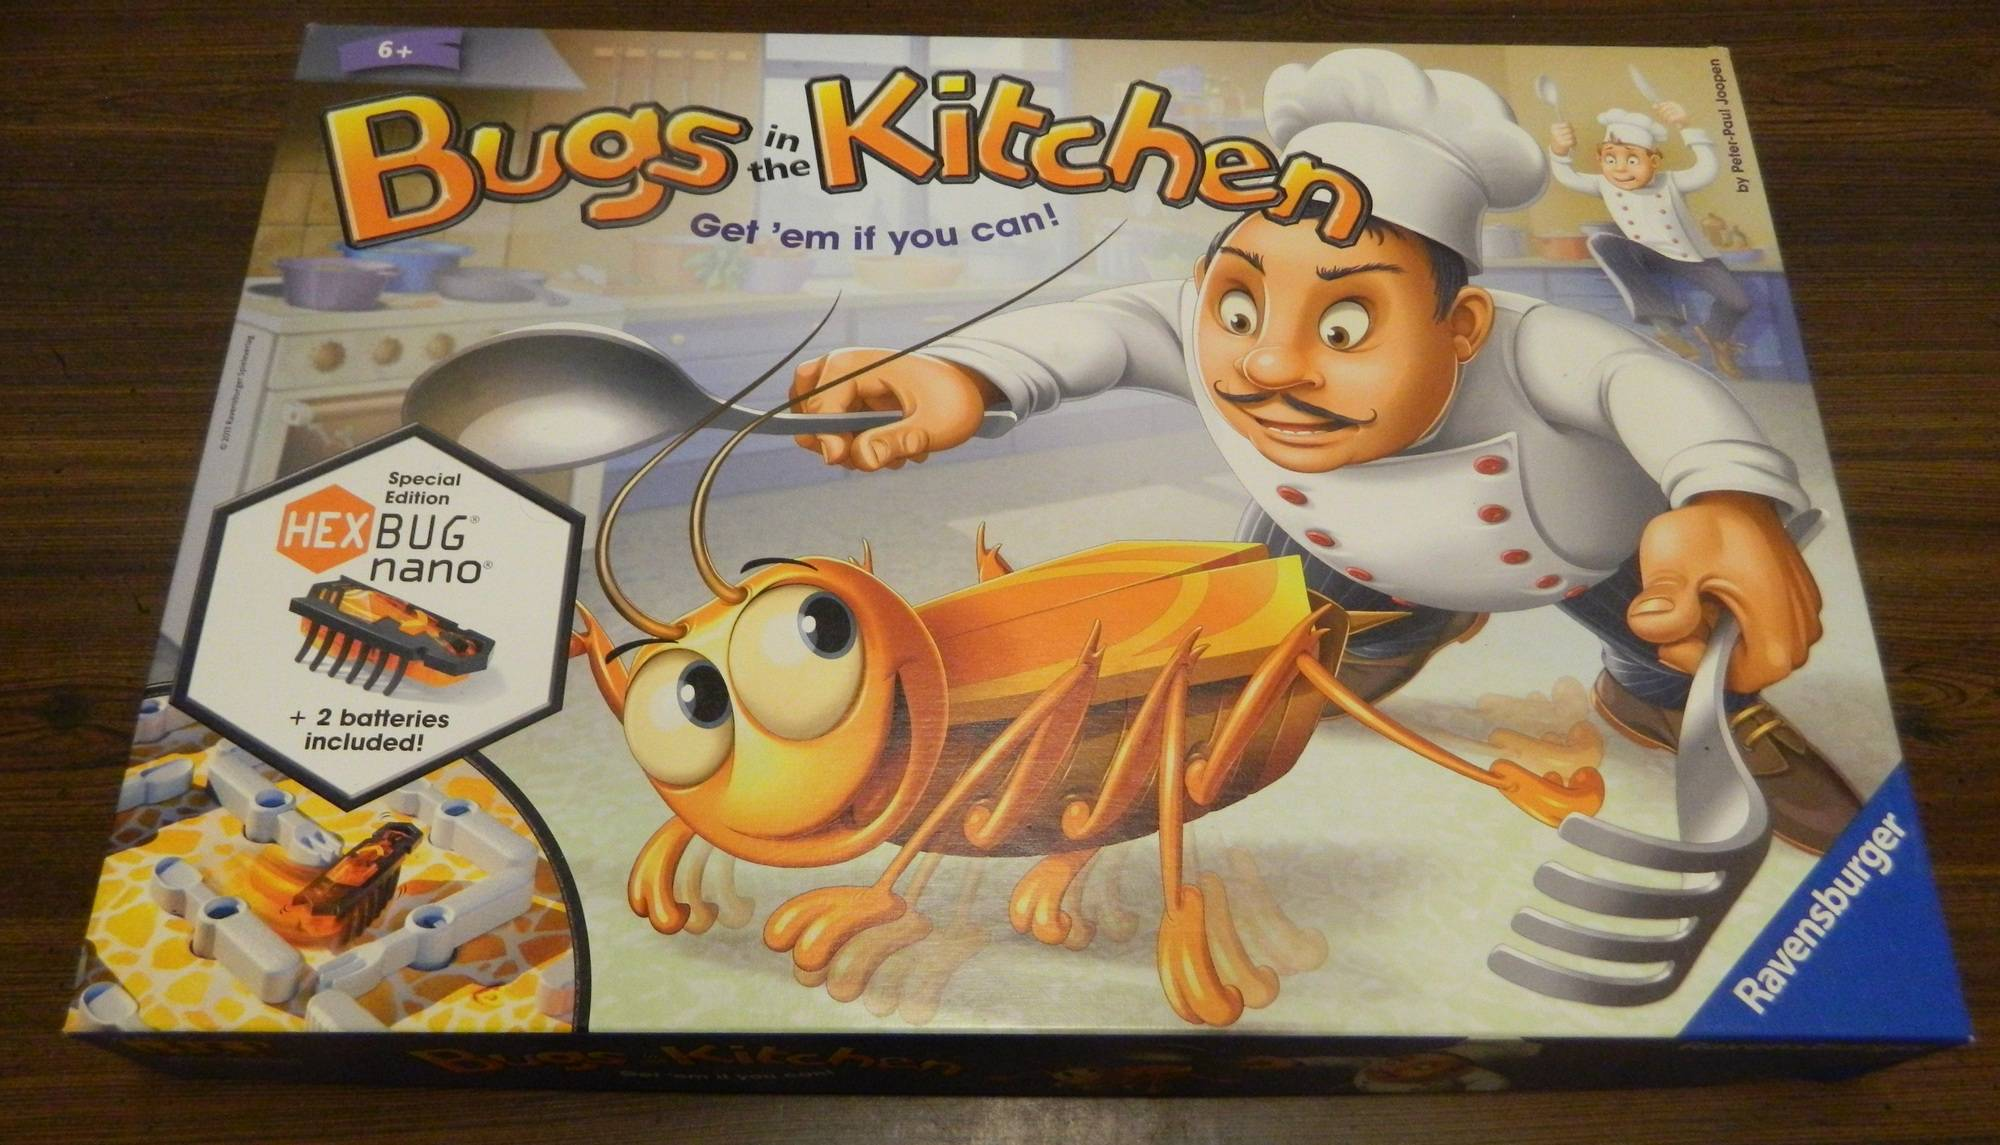 Box in Bugs in the Kitchen